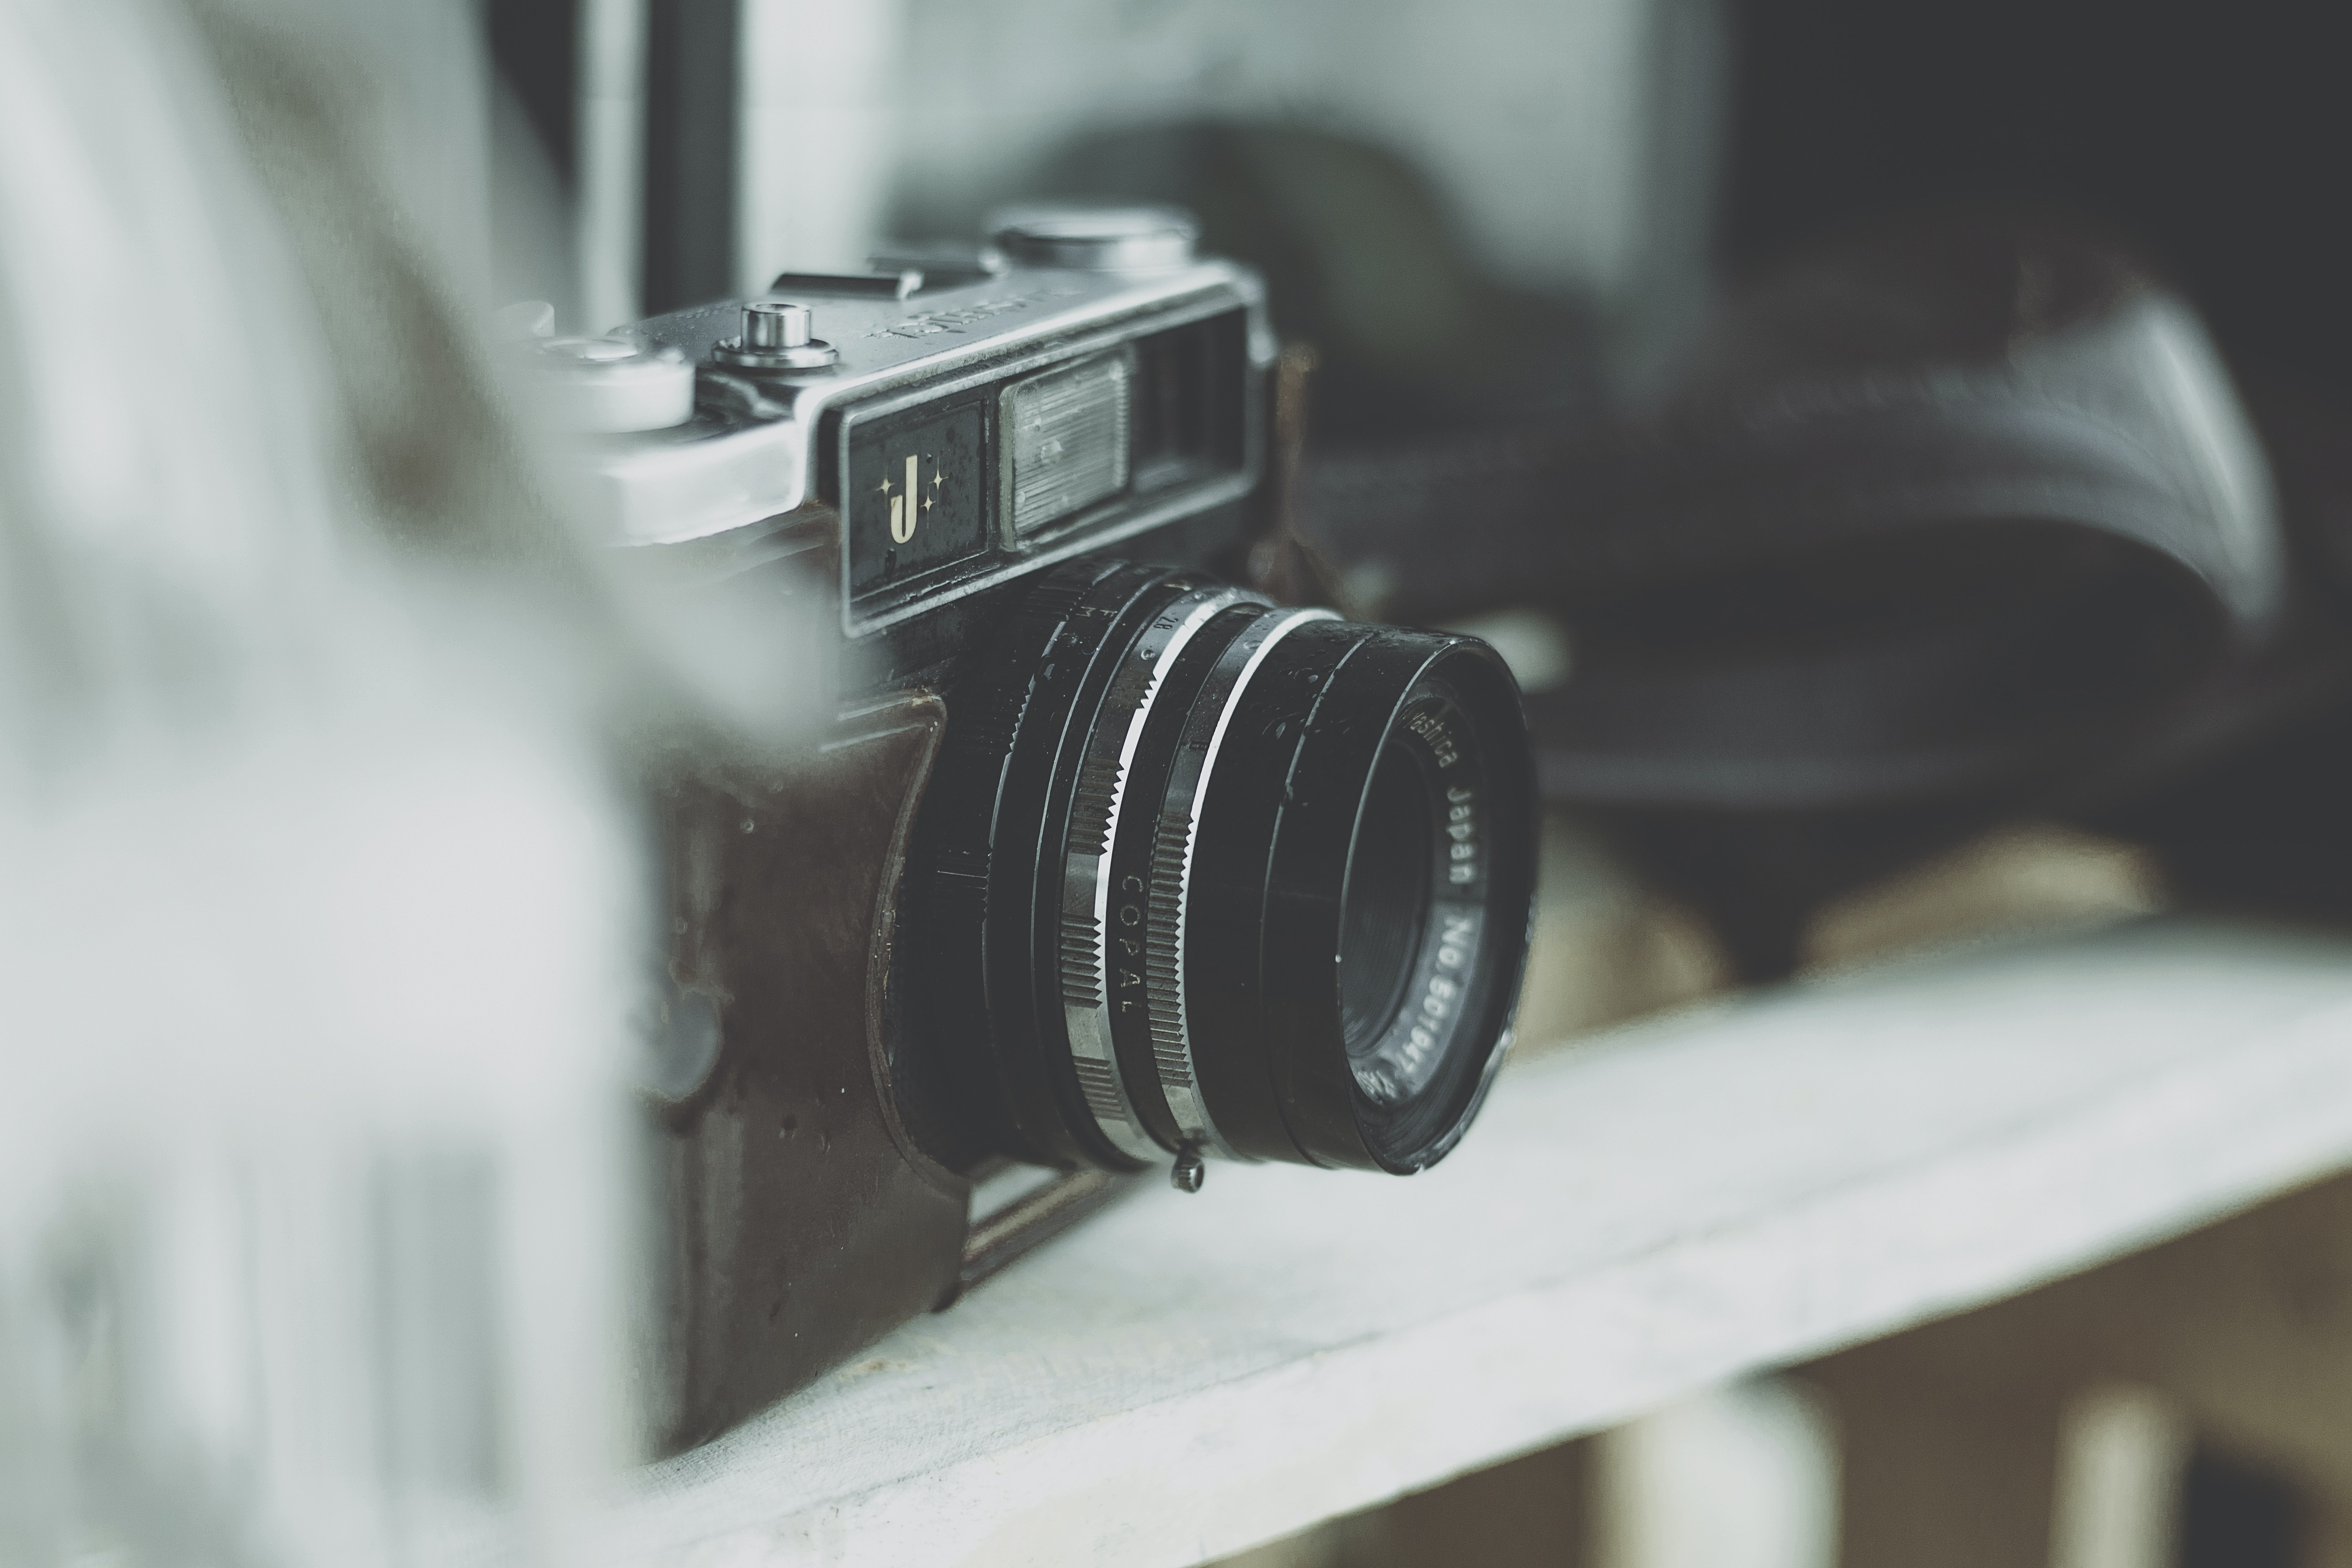 Photographer's vintage camera on a shelf